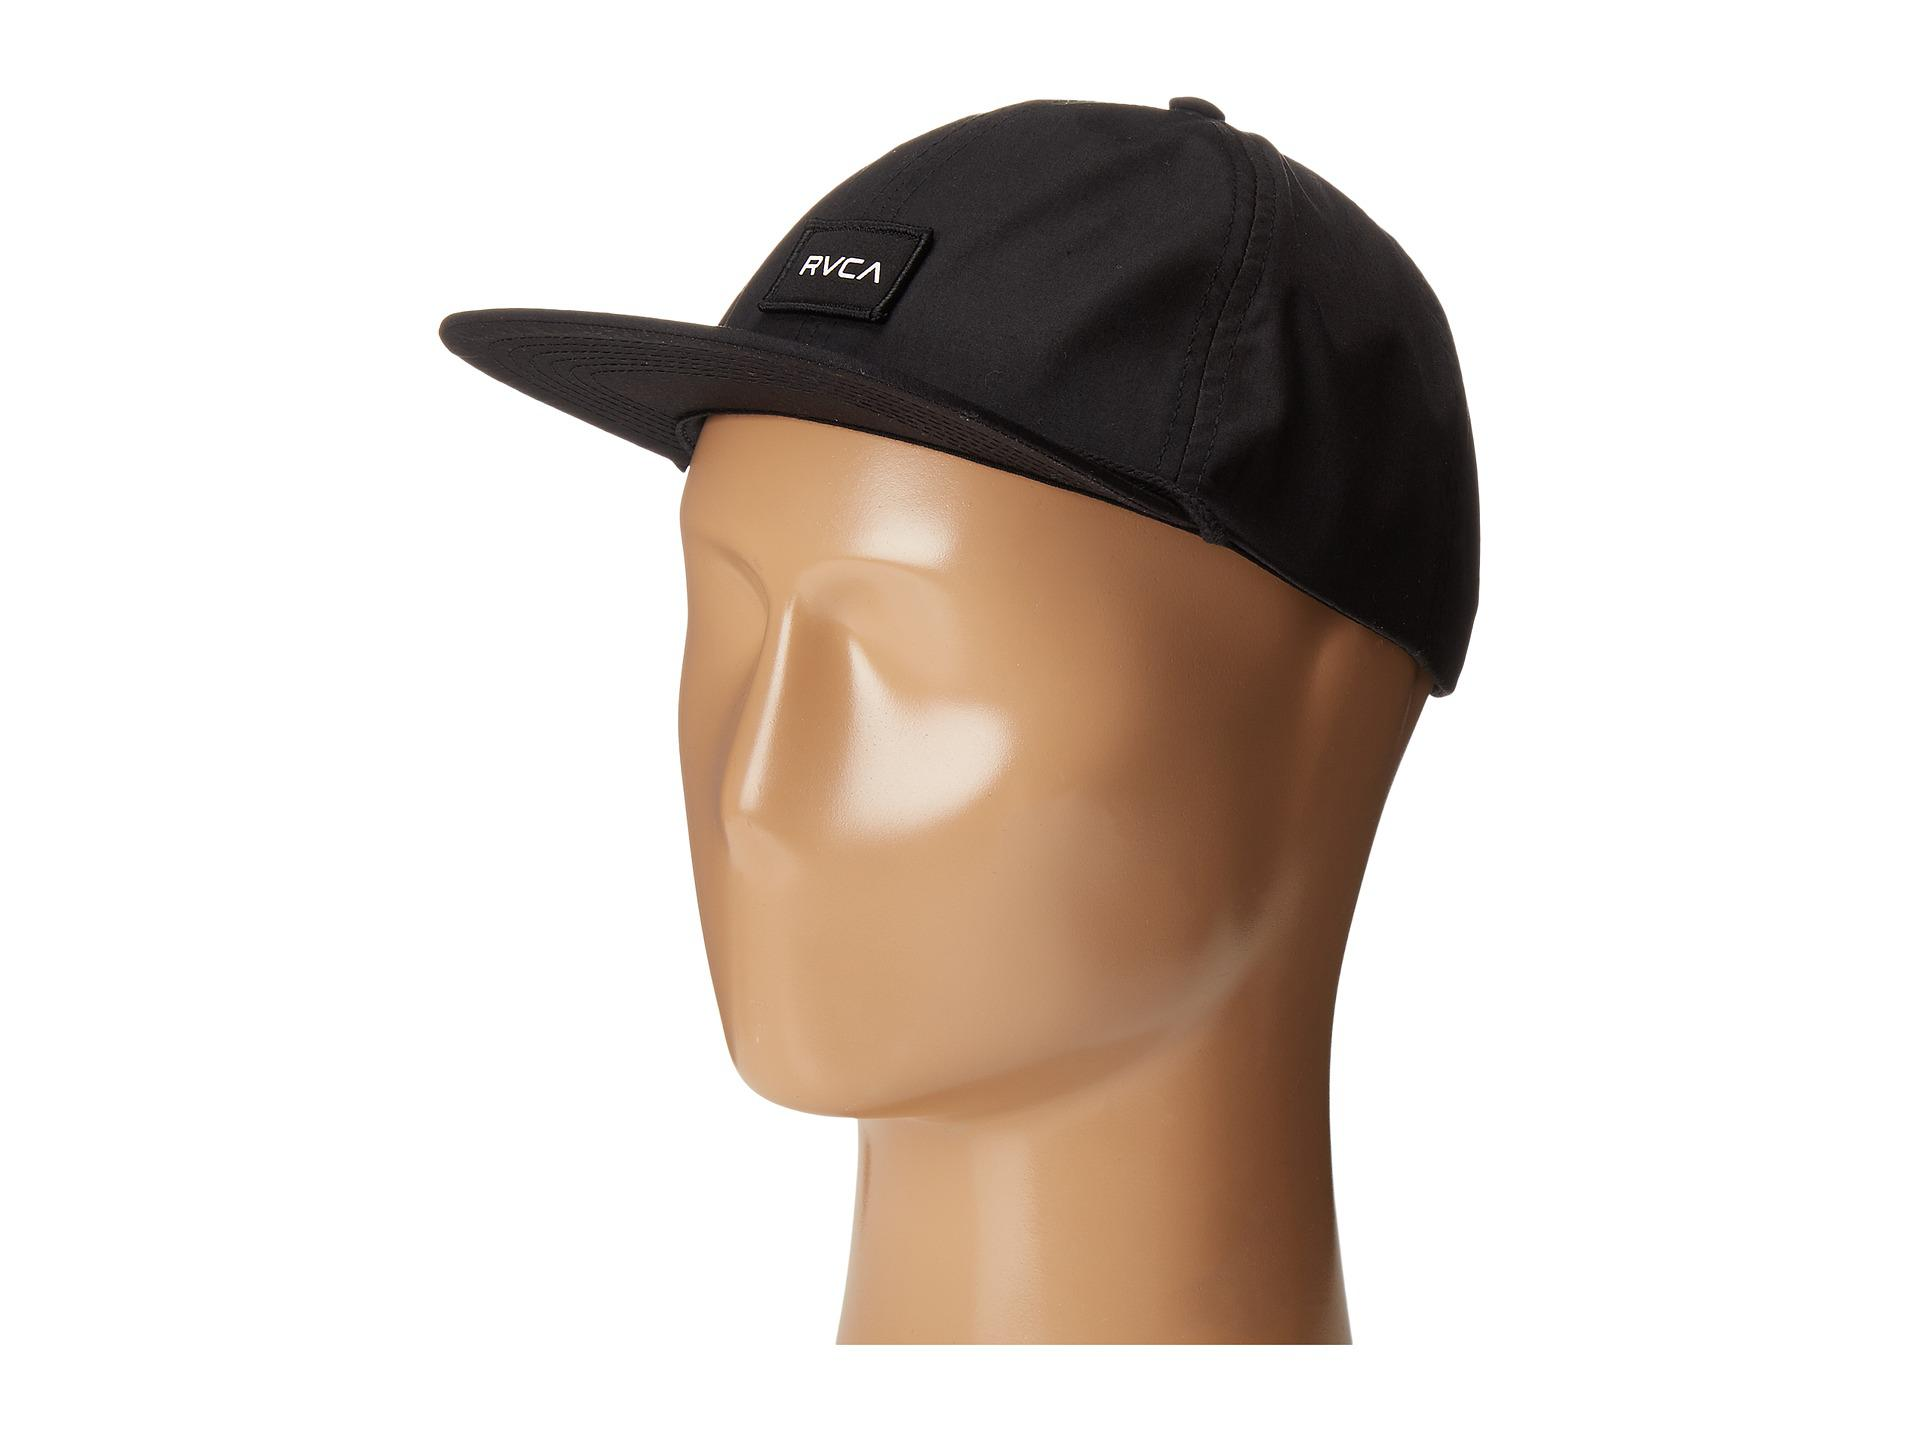 official photos 8b7a2 318ab netherlands rvca commonwealth snapback baseball cap c9ad6 e025d  discount  code for lyst rvca curren caples cap in black for men 1c9d4 80be4